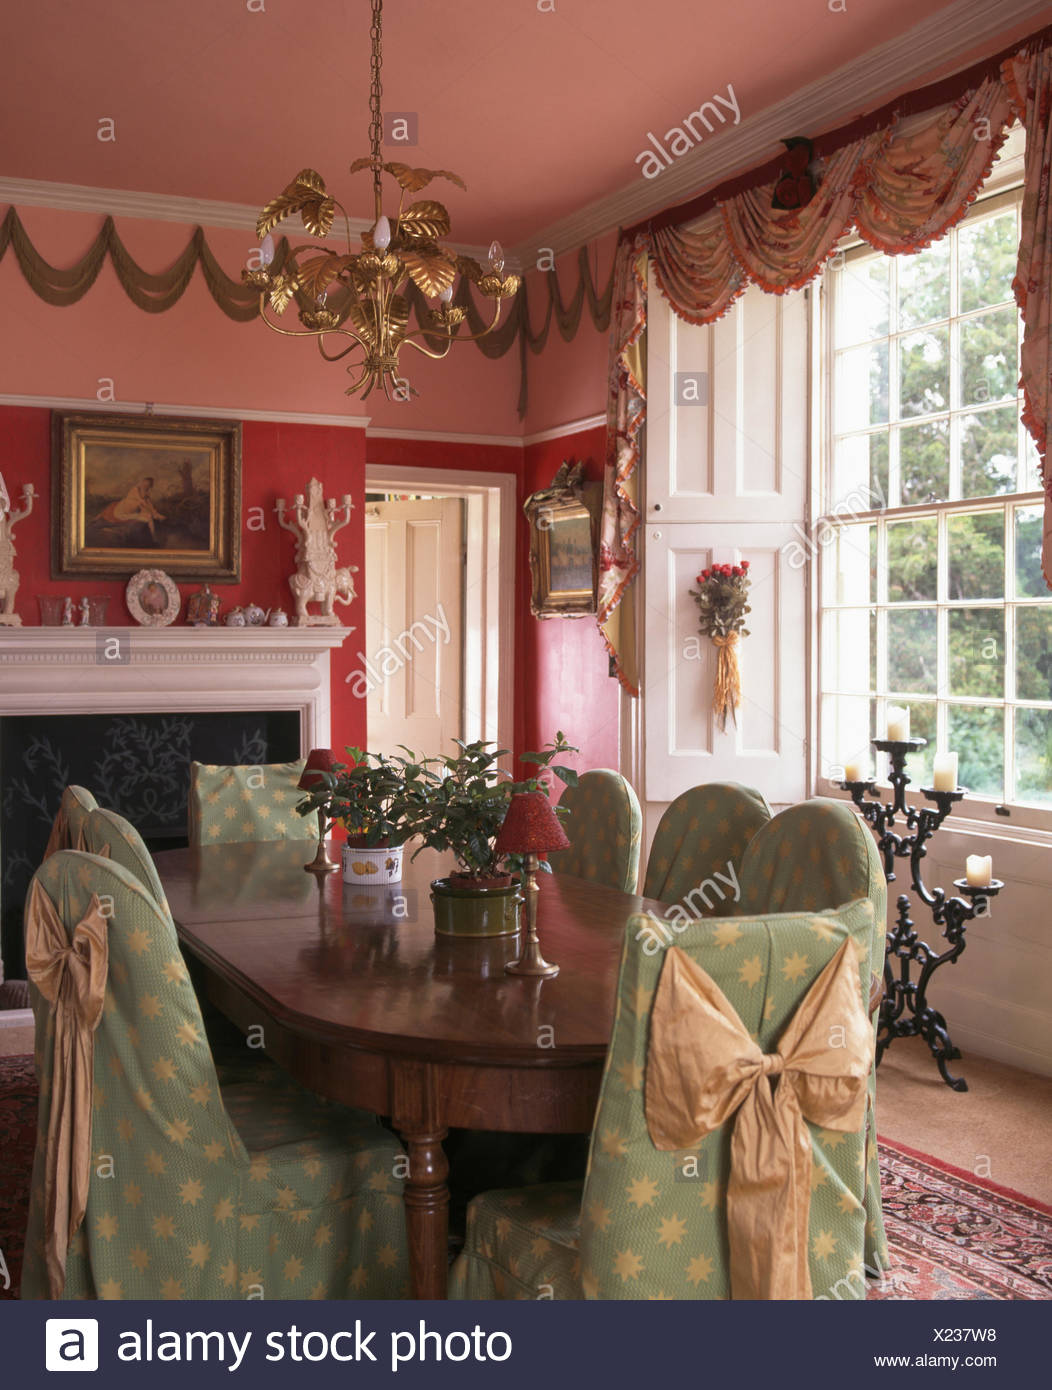 Green Loose Covers With Silk Bows On Chairs At Table In Red Nineties Dining Room A Brass Light Fitting